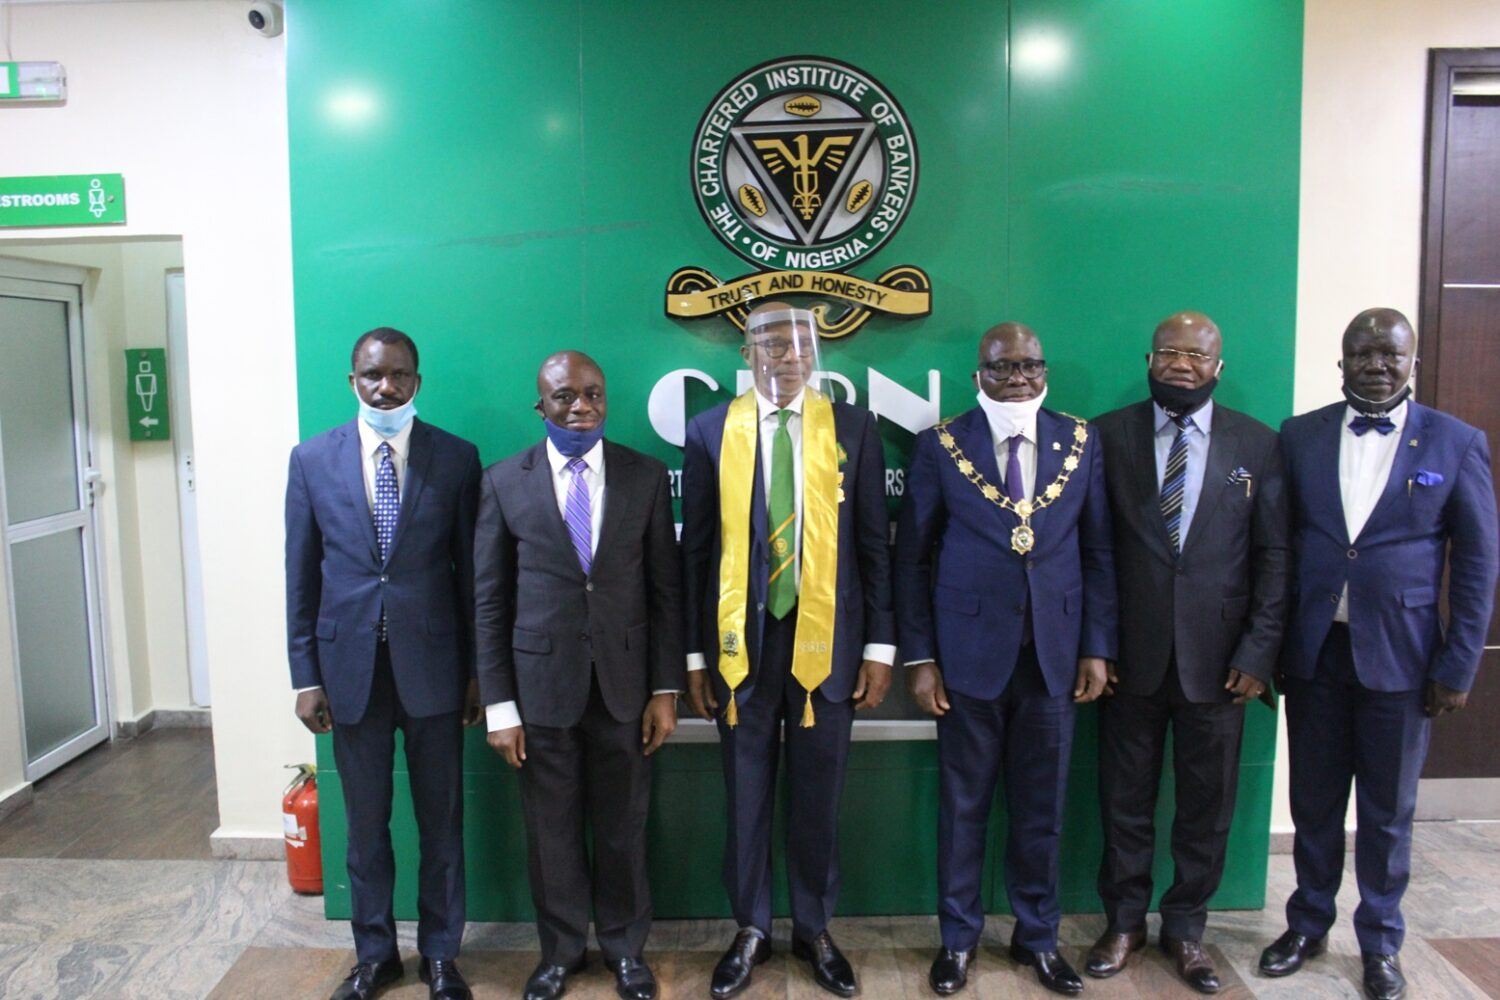 L-R: Mr. Dele Alabi, National Treasurer, Chartered Institute of Bankers of Nigeria; Dr. Ken Opara, 1st Vice President/Chairman, Board of Fellows/Practice Licence, CIBN; Mr. Fola Adeola, Awardee/ Founder & Pioneer MD/CEO. GTBank Plc; Mr. Bayo Olugbemi, President/Chairman of Council; CIBN; Prof Deji Olanrewaju, 2nd Vice President, CIBN and Mr. Seye Awojobi, Registrar/CEO, CIBN during the conferment of honorary Fellowship on Mr. Fola Adeola today at the Bankers House, Victoria Island, Lagos today